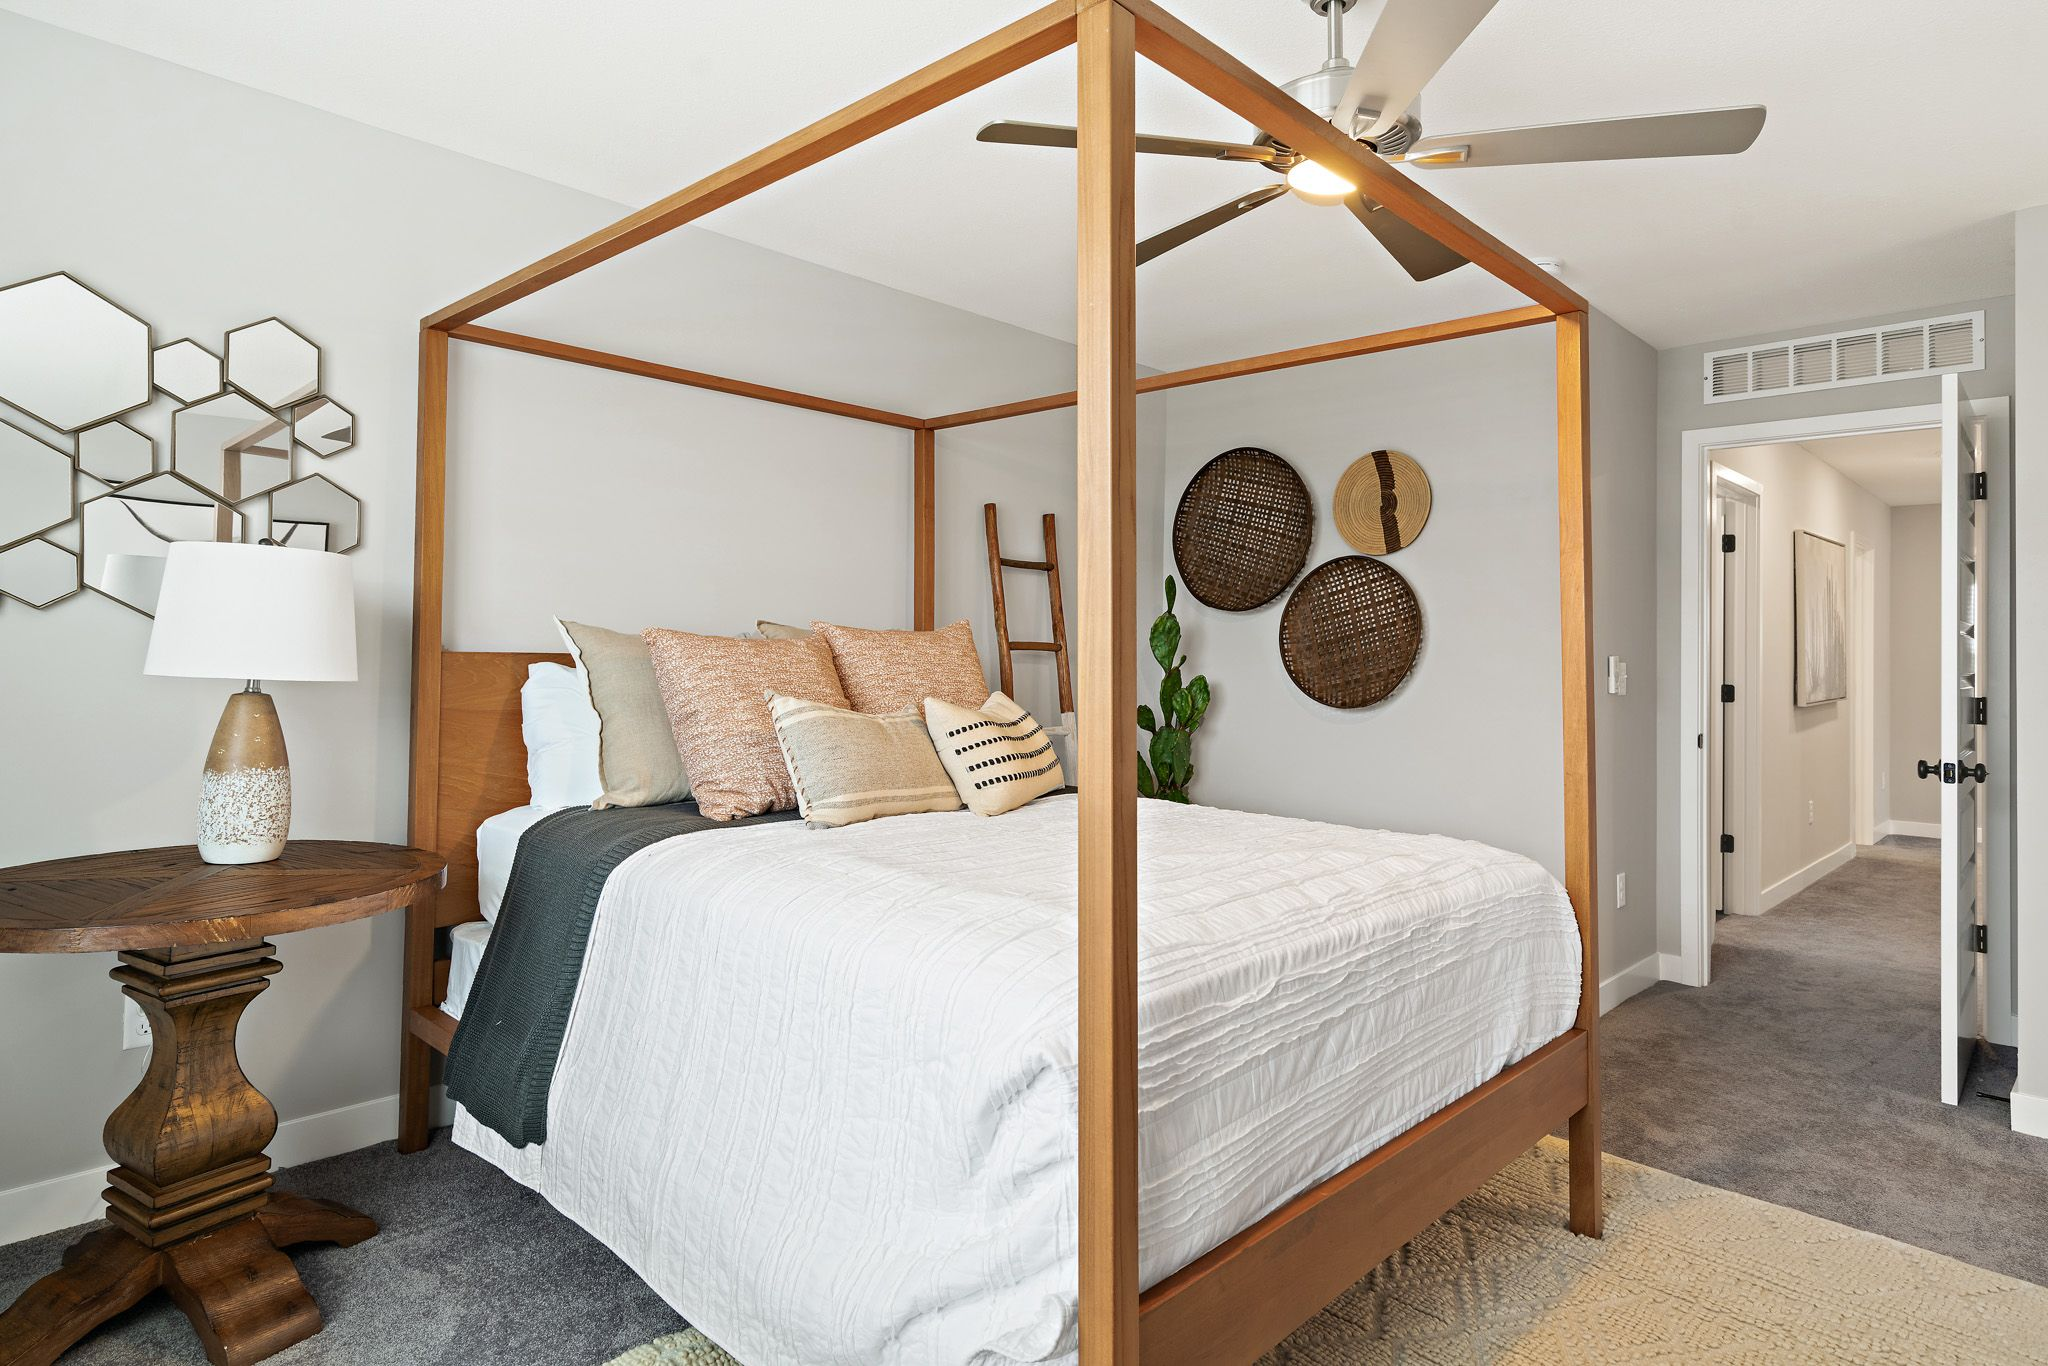 Bedroom featured in the honeydew By clover & hive in Kansas City, MO